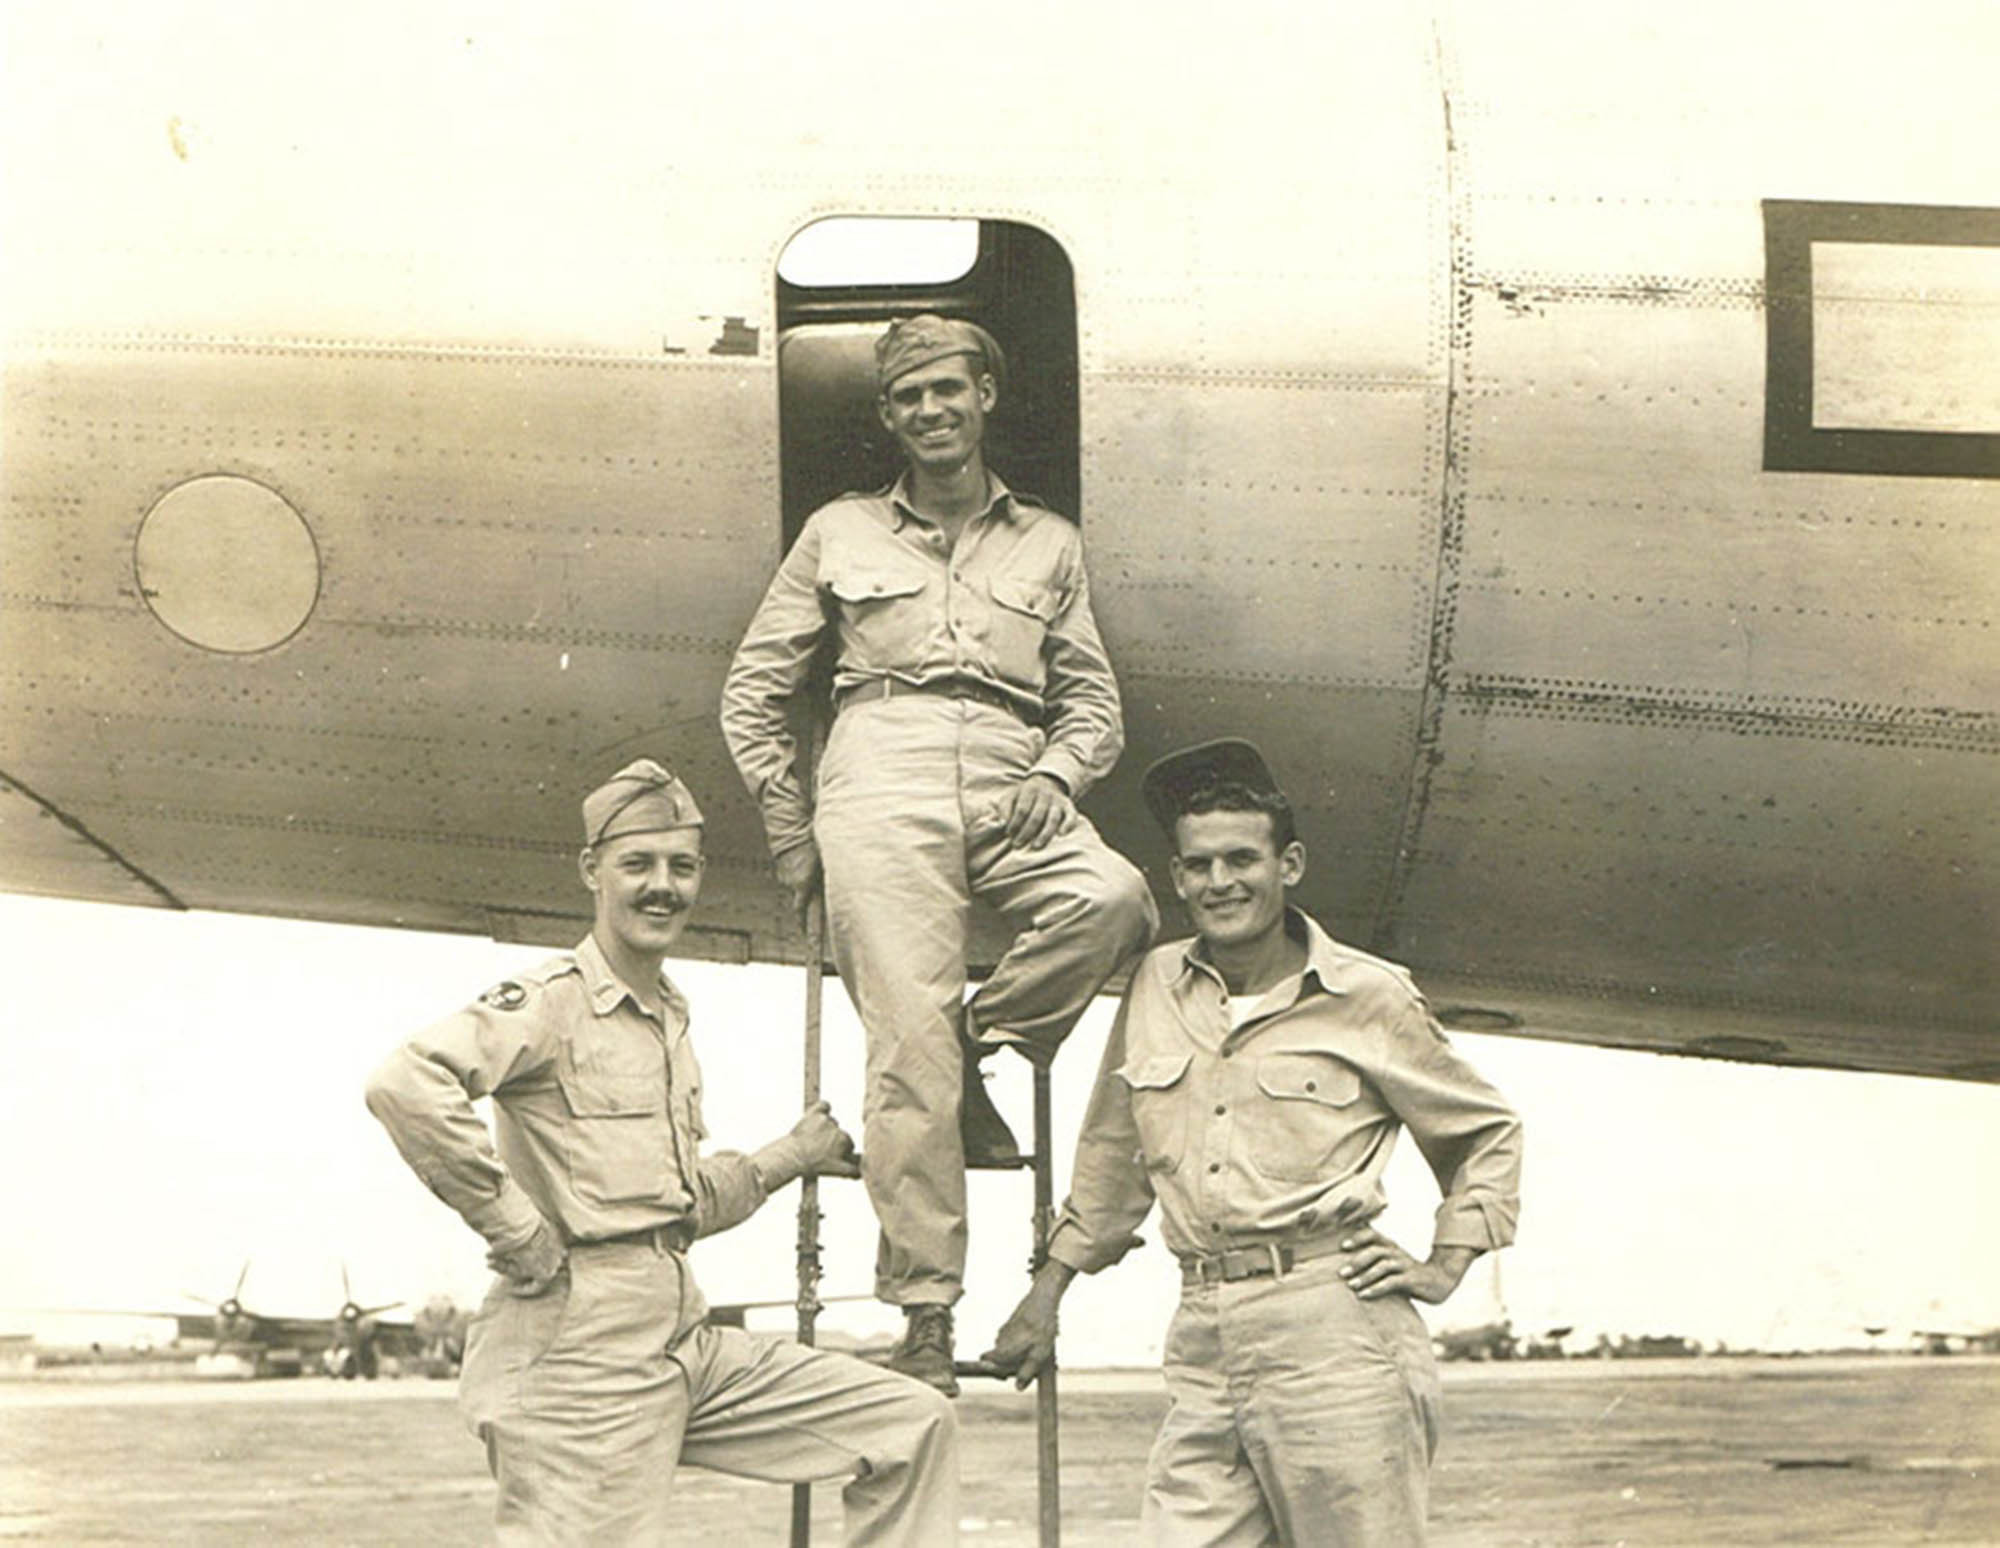 Three Texans were aboard a B-29 that crashed in China in 1944: Lt. Garl Bud Ray, who was the plane's co-pilot; Lt. Charles Gray, the flight observer; and Sgt. Virgil Bailey, a gunner.